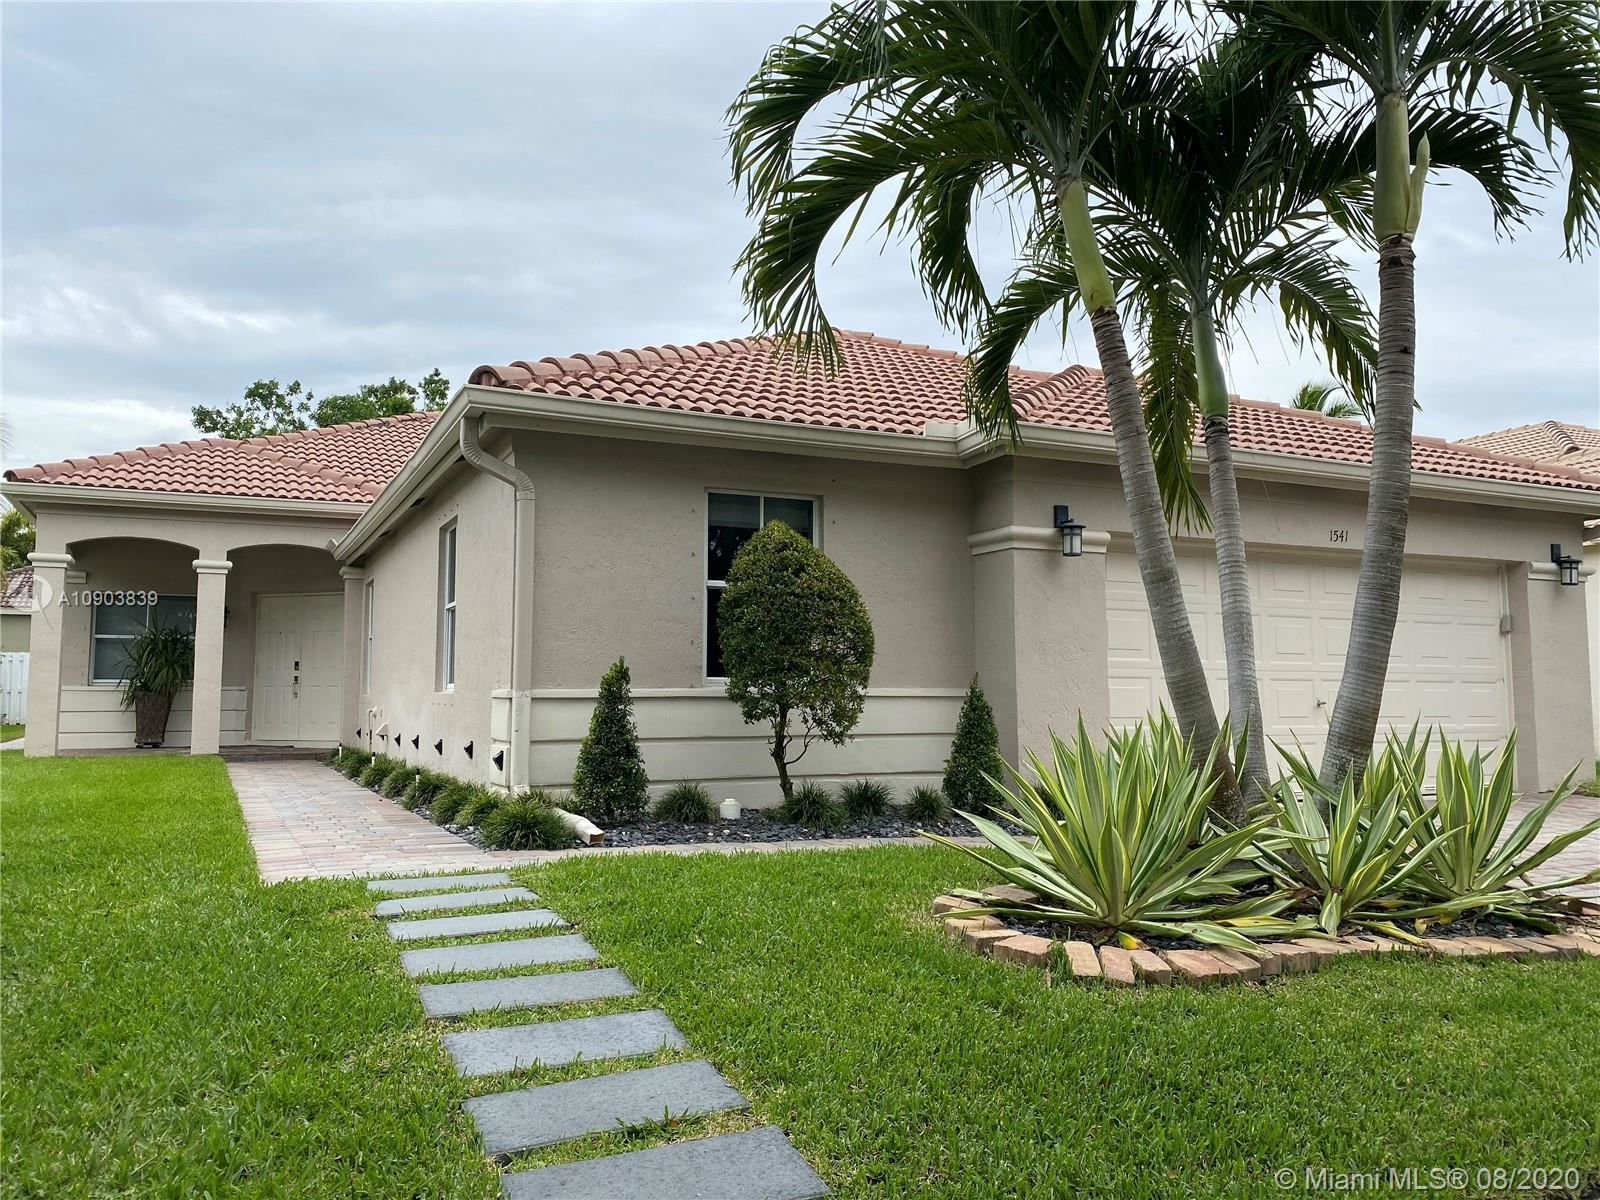 1541 Elm Grove Rd, Weston, FL 33327 - #: A10903839